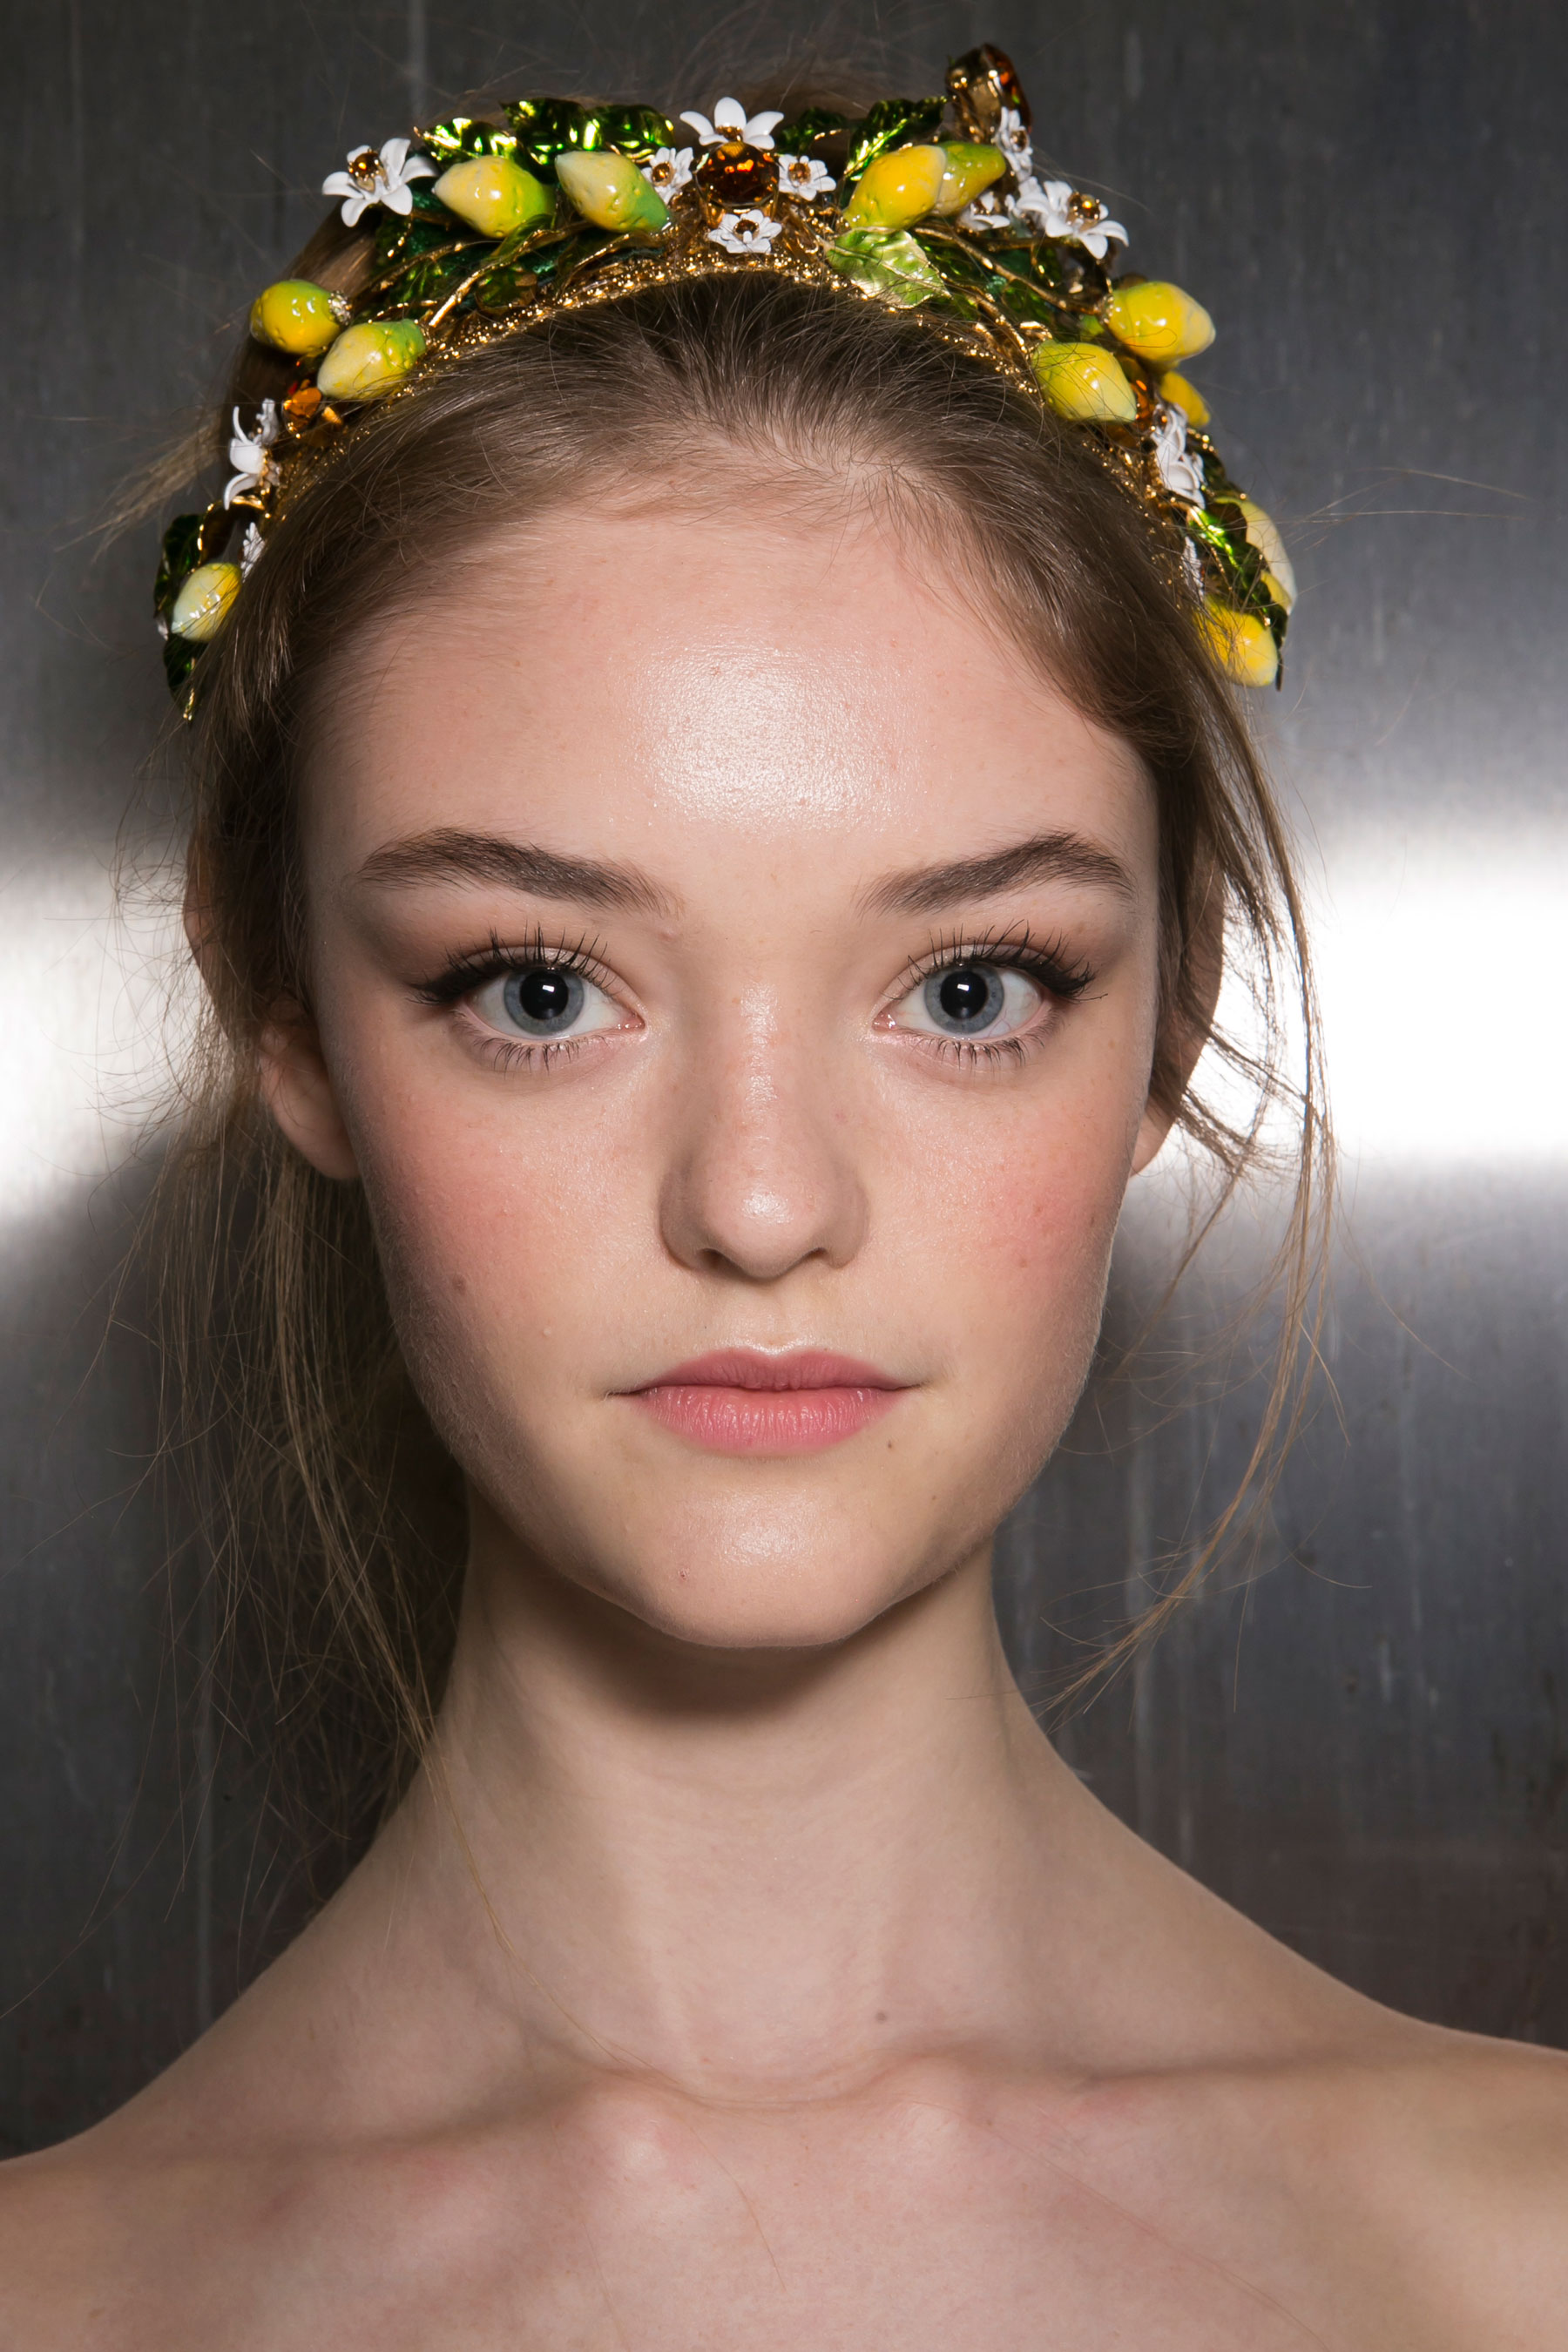 Dolce-and-Gabanna-backstage-beauty-spring-2016-fashion-show-the-impression-030